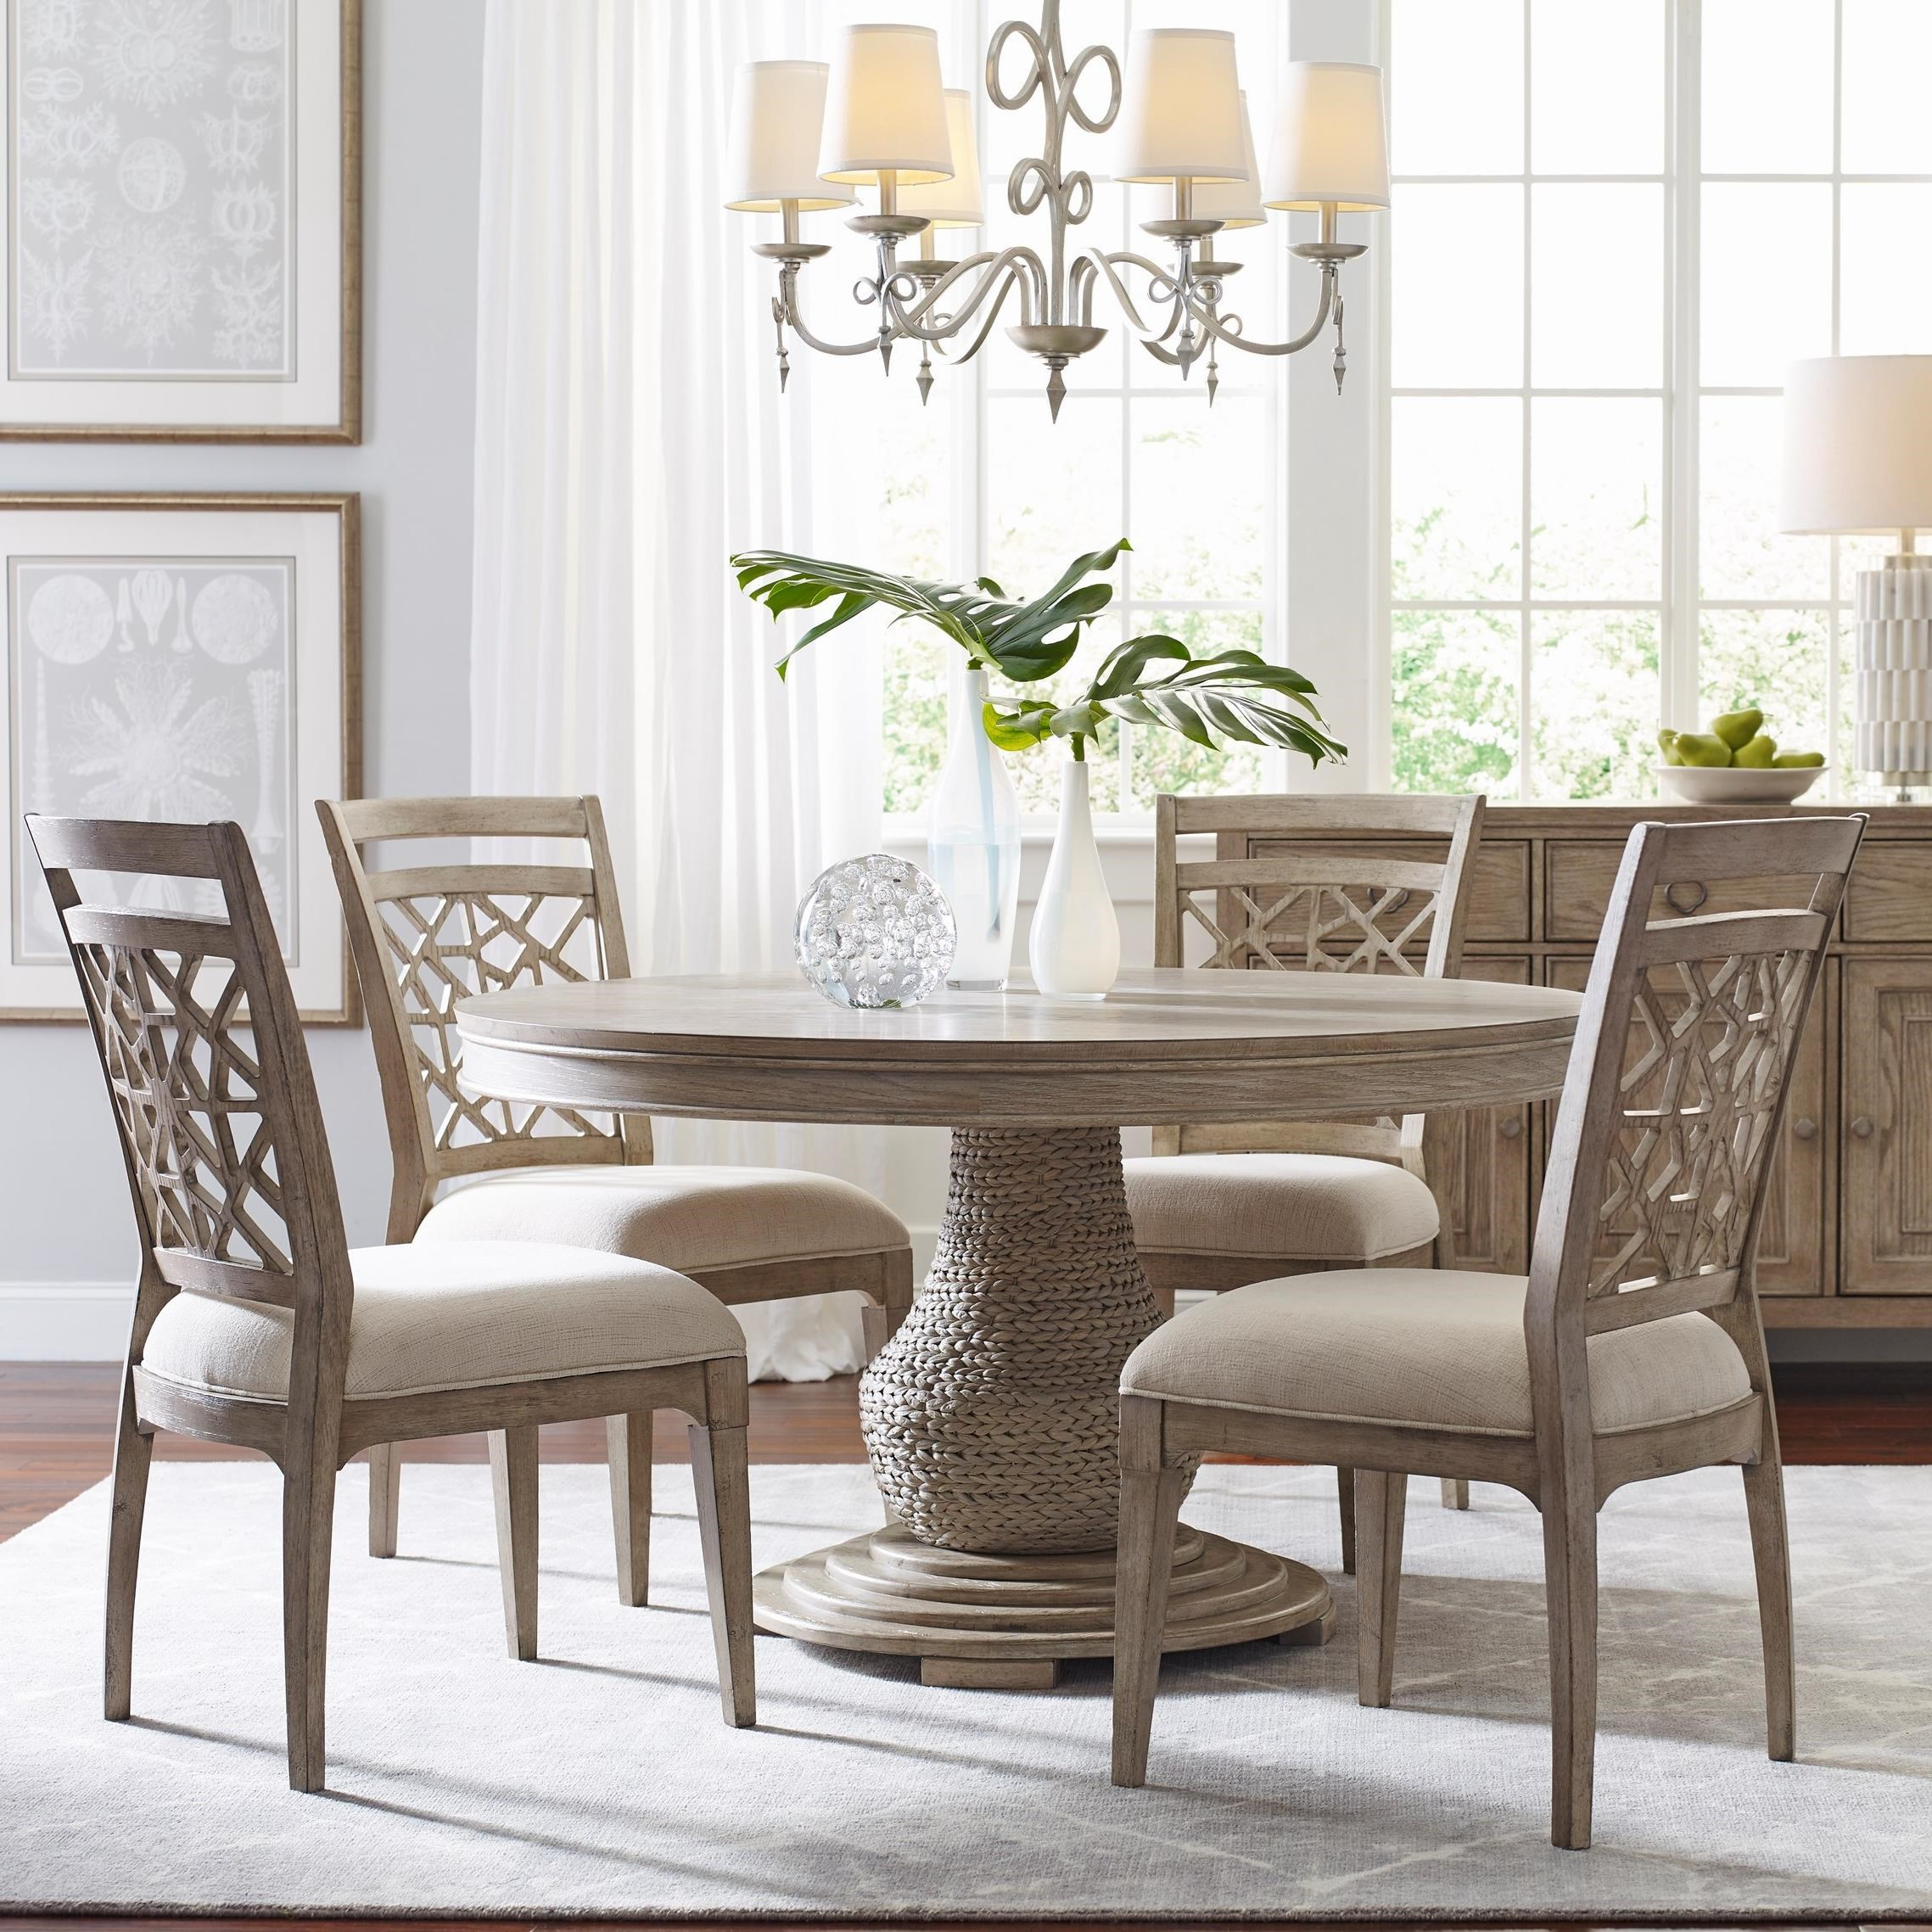 American Drew Vista Relaxed Vintage 5 Piece Dining Set